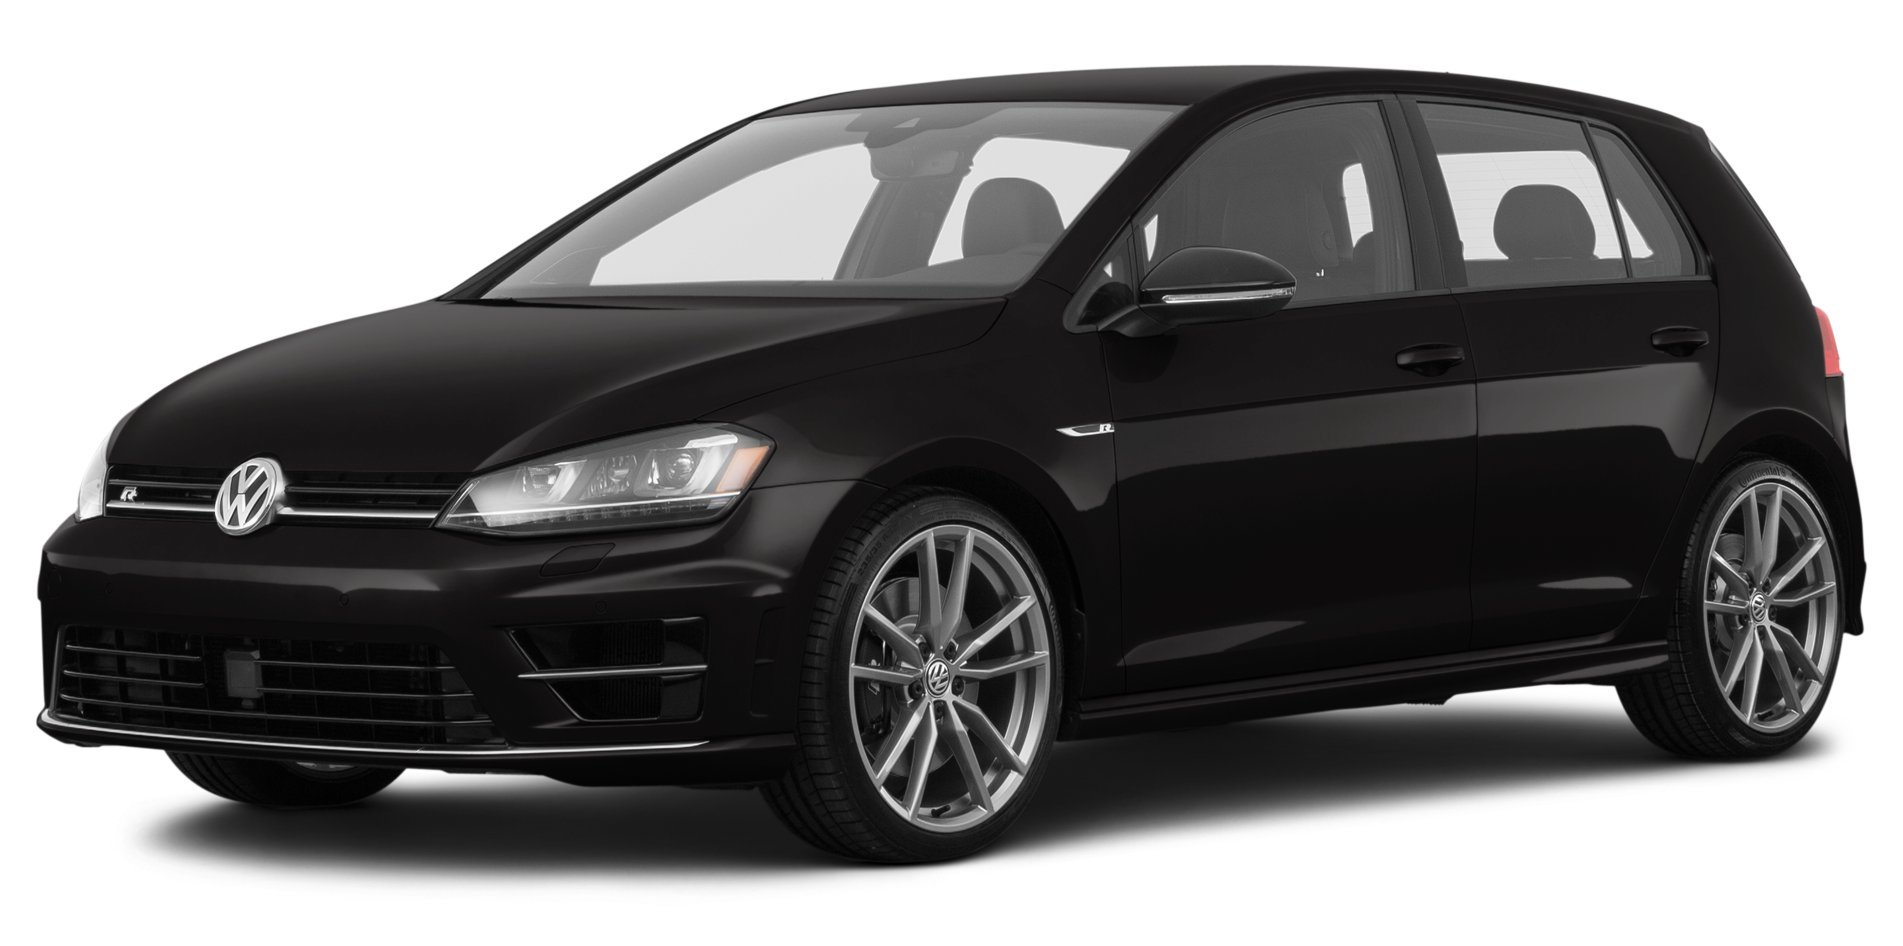 2017 volkswagen golf r reviews images and specs vehicles. Black Bedroom Furniture Sets. Home Design Ideas